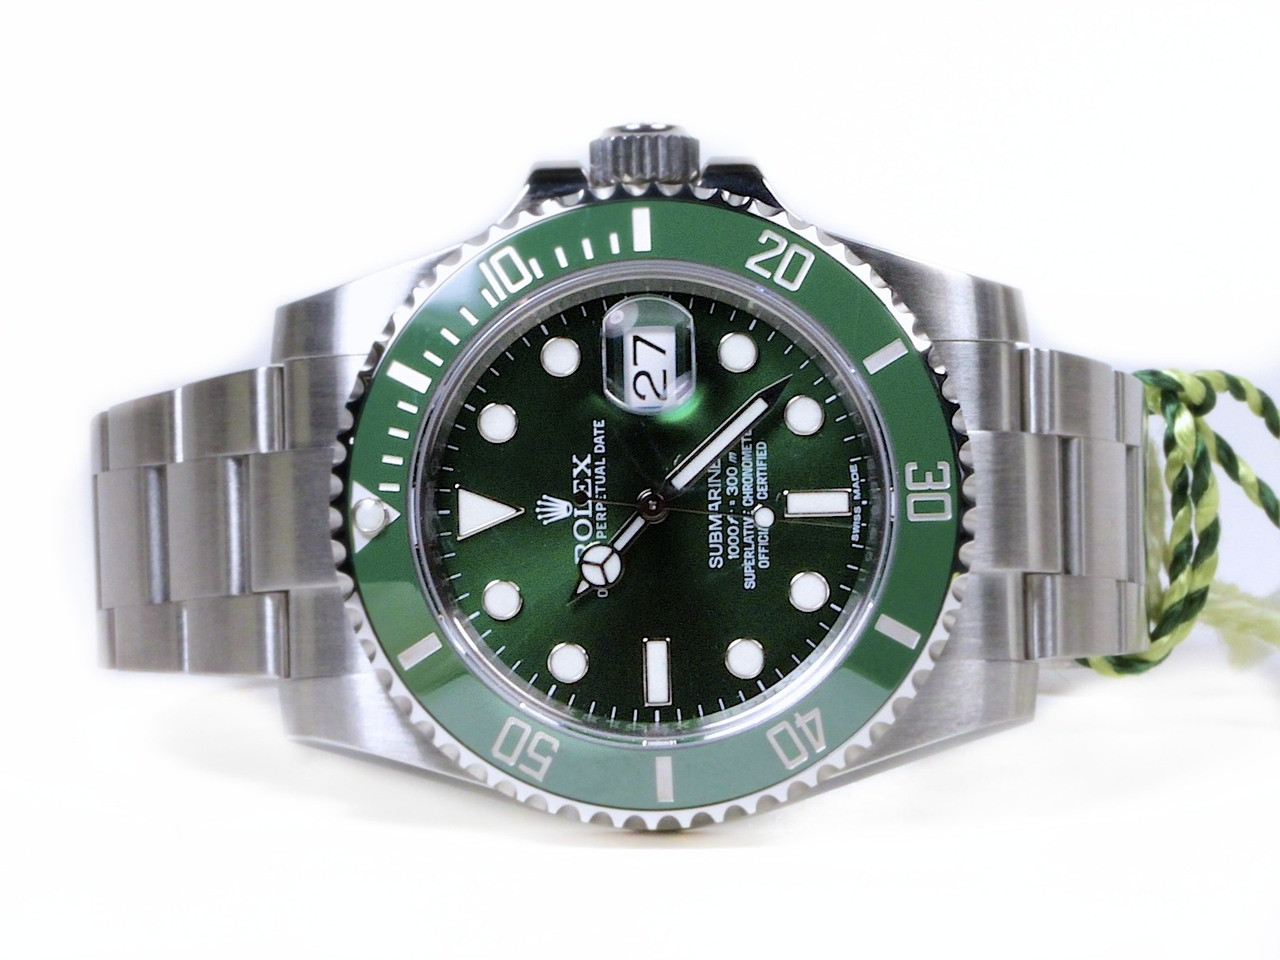 cc60f57b048 Rolex Watch - Green Steel Submariner 116610LV used for sale Legend of Time  Chicago Watch Center